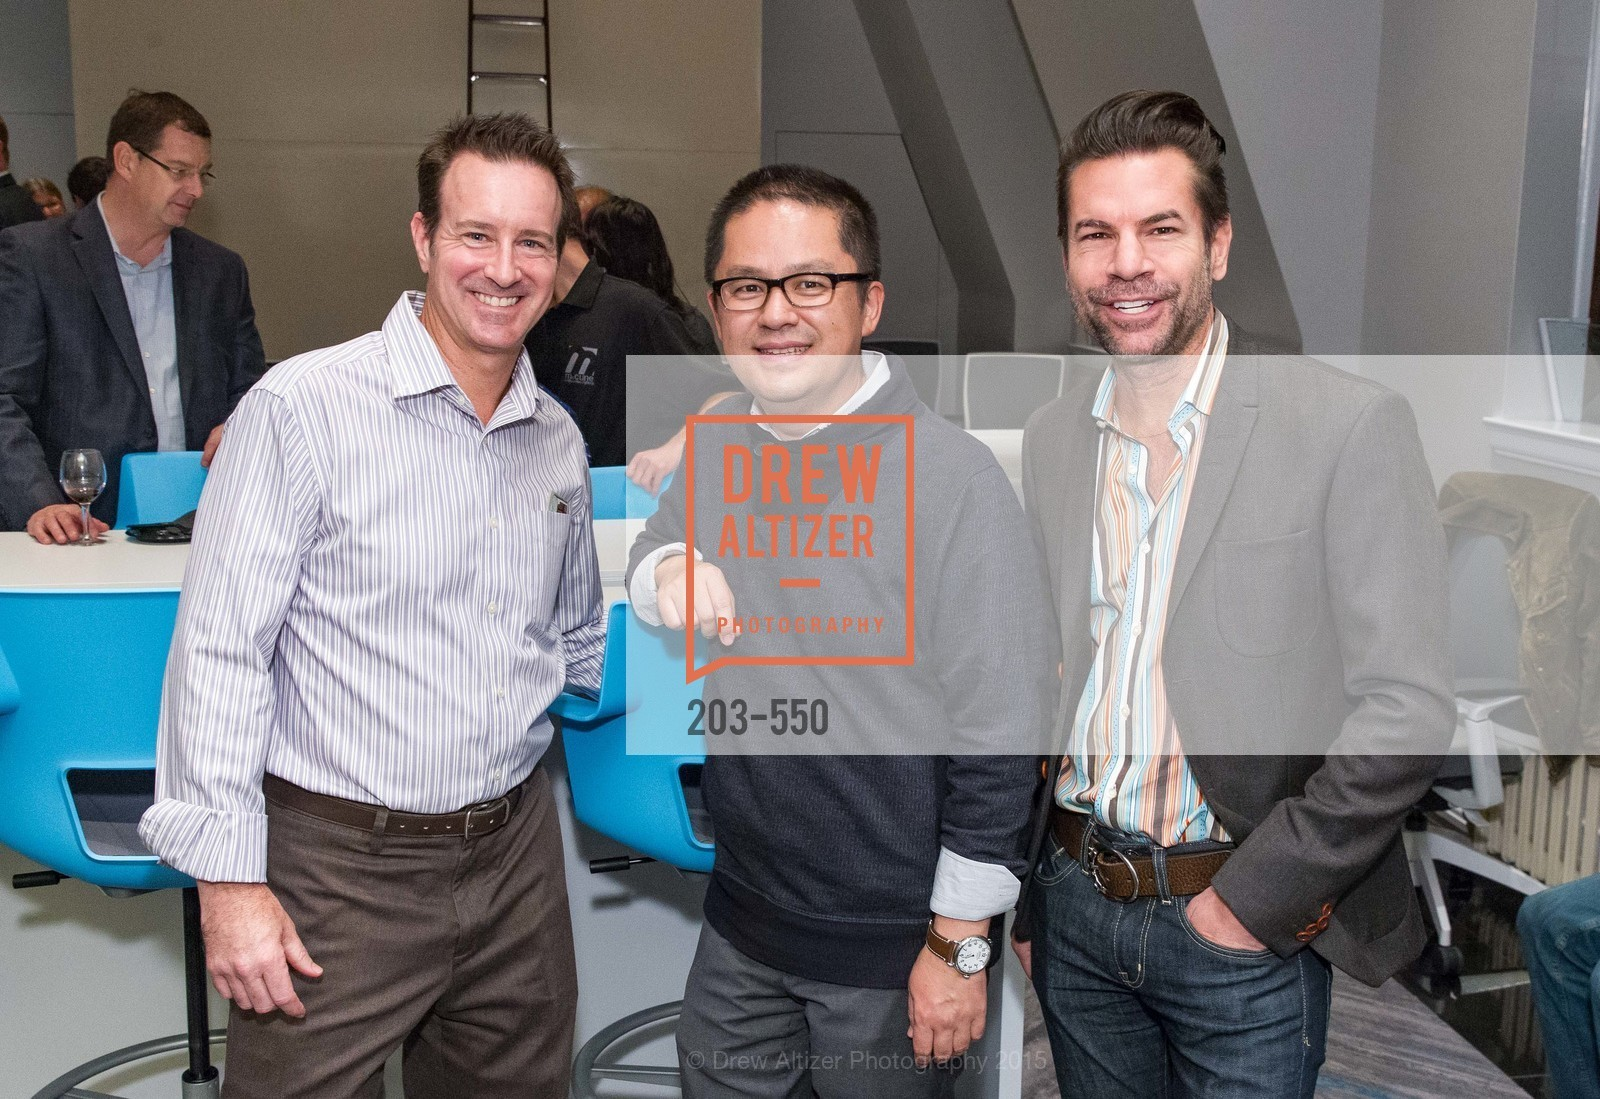 Darren Johnson, Robert Mison, H2O+ World Headquarters Opening: A New Beauty for the Bay, 111 Sutter St. 111 Sutter Street, 22nd Floor, November 18th, 2015,Drew Altizer, Drew Altizer Photography, full-service agency, private events, San Francisco photographer, photographer california